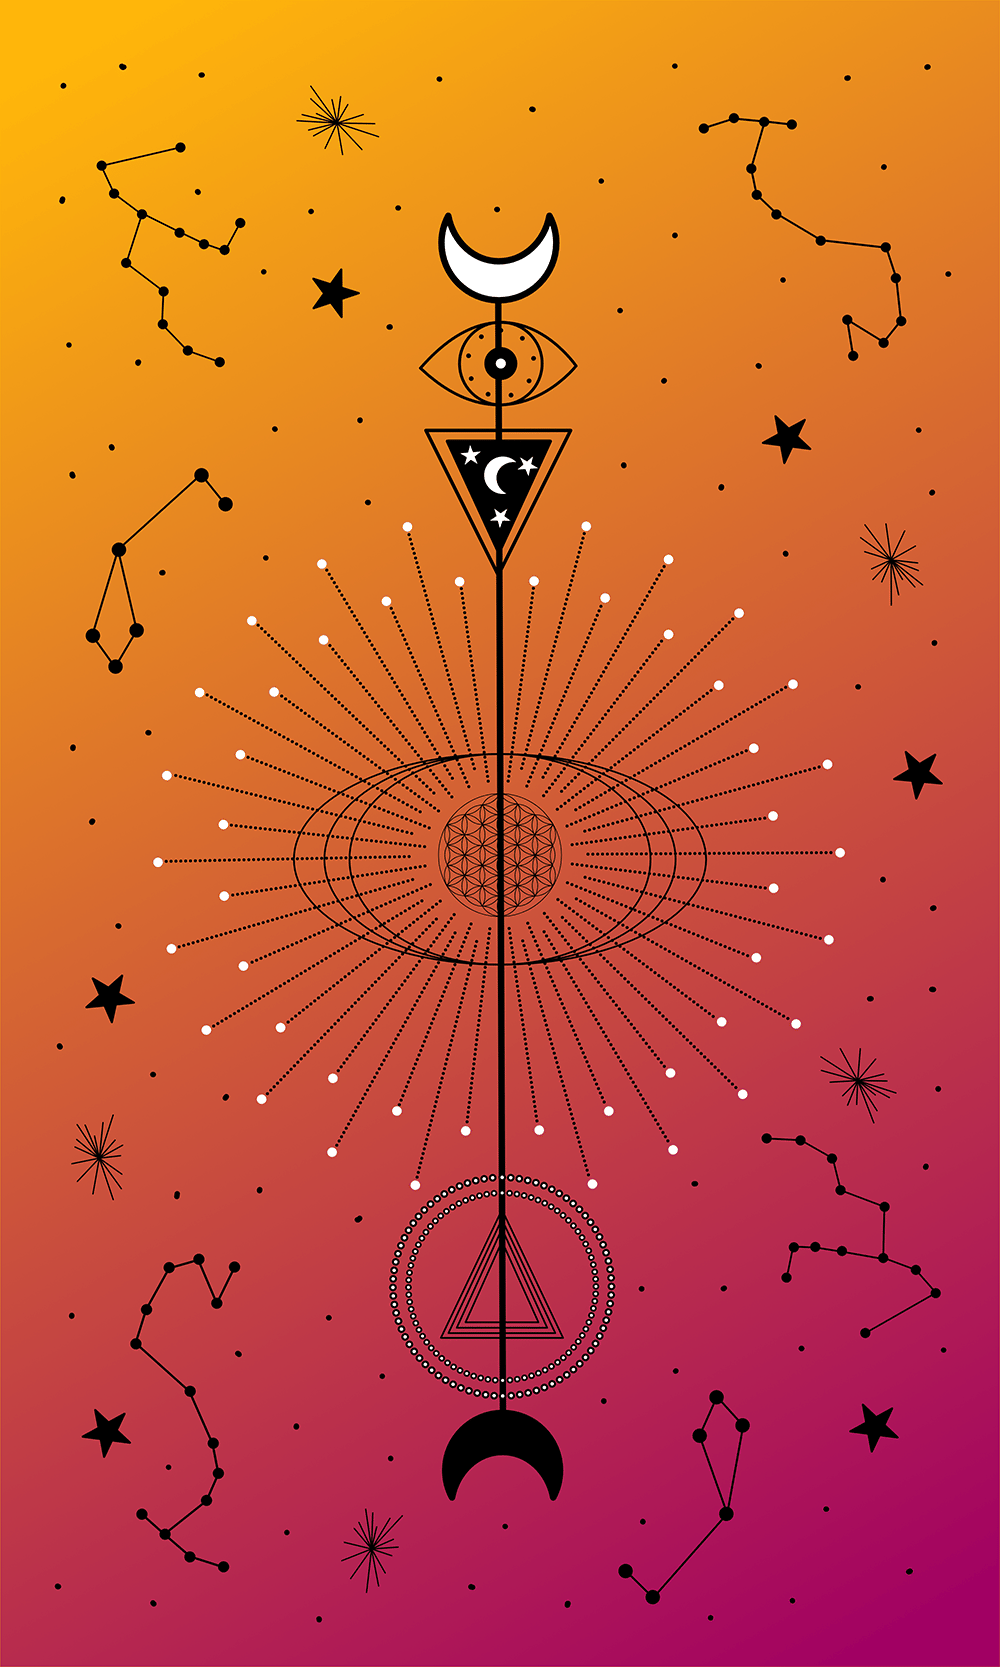 Geometric Vector Illustrations Made in Affinity Designer - image 4 - student project